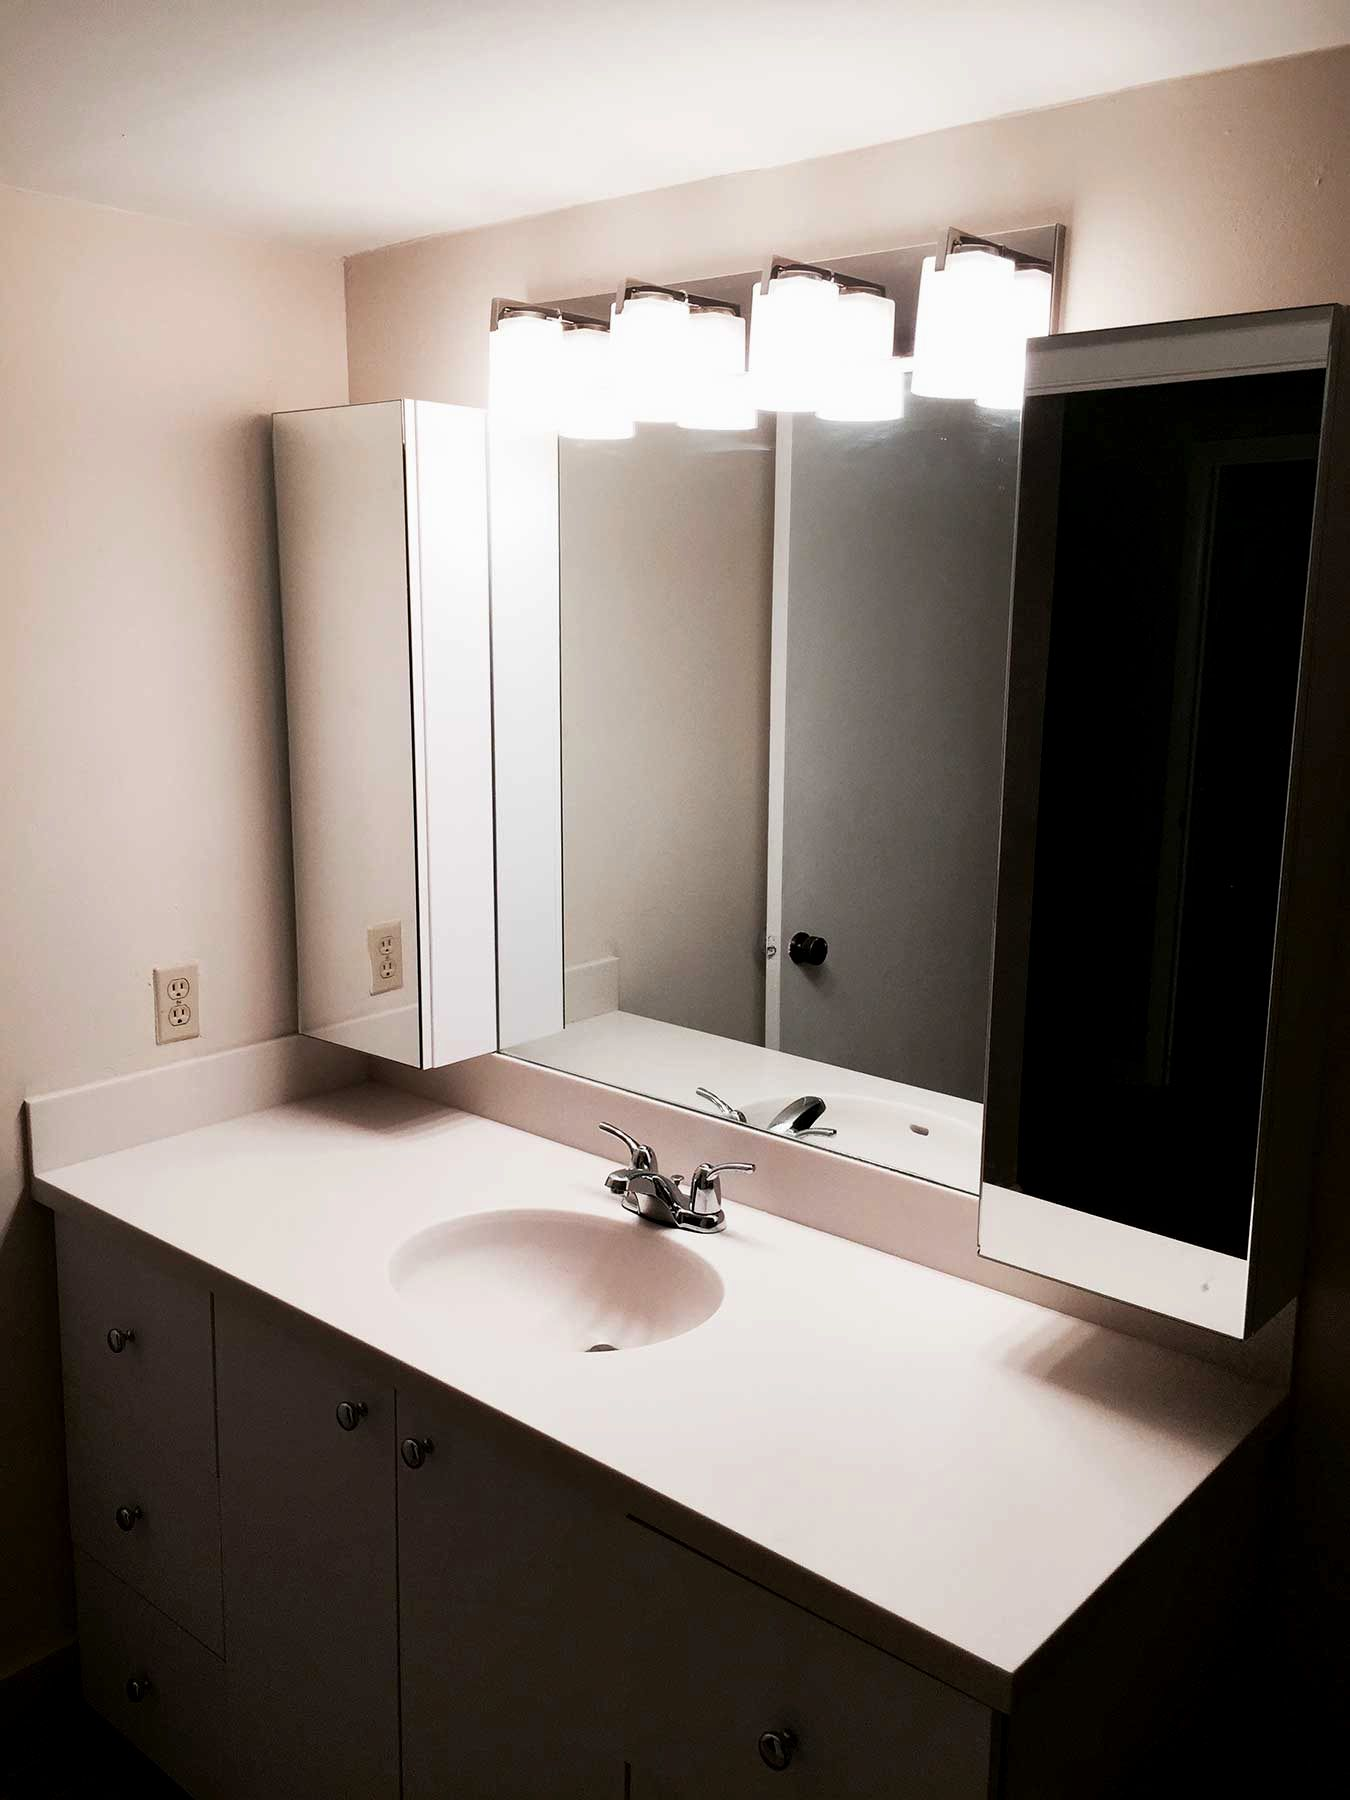 vanities affordable vanity miami top modern sinks bathroom sink